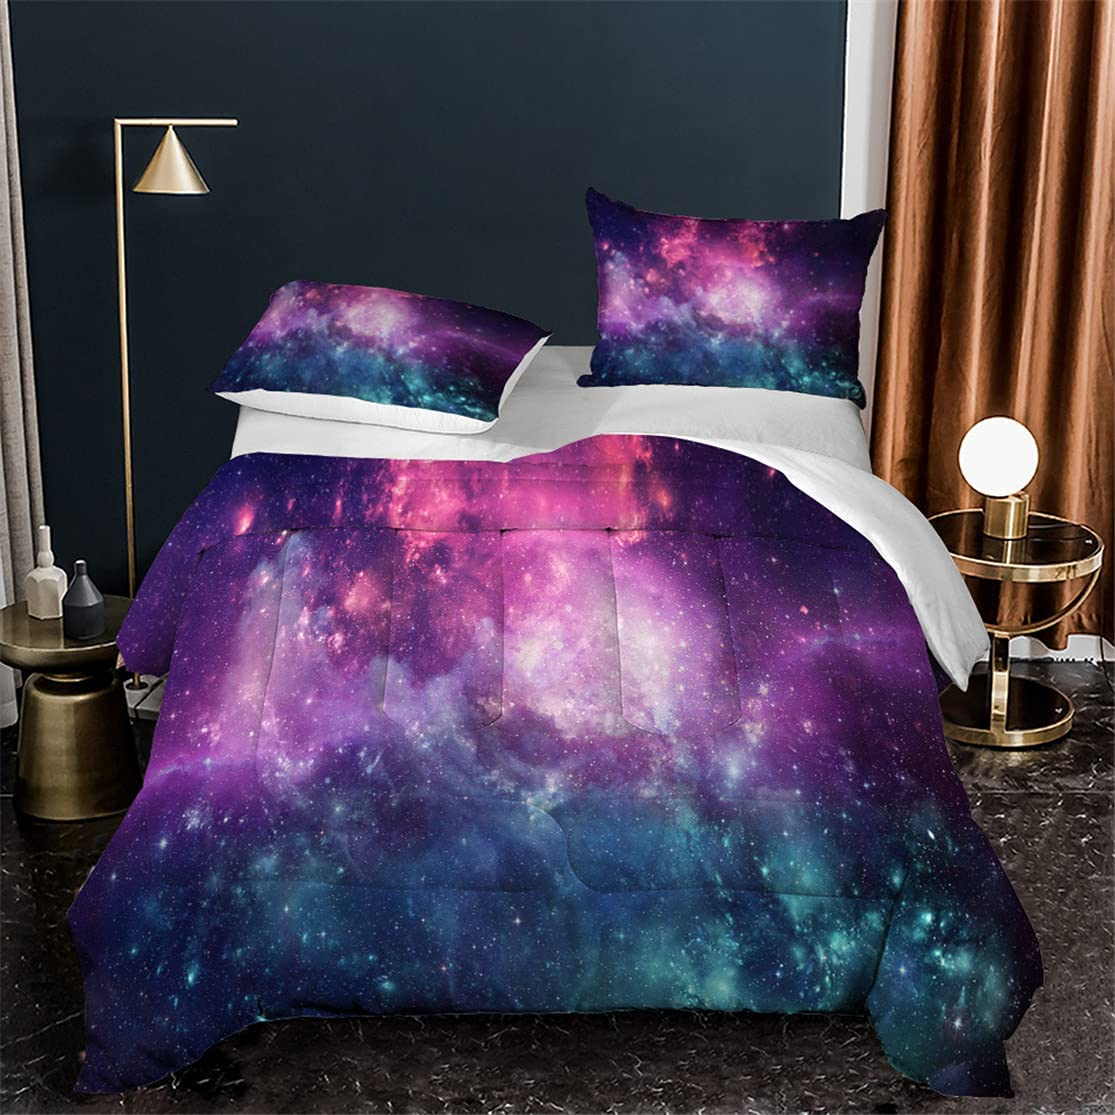 HMT NF 3D Galaxy Starry Sky Comforter Purple Discount mail order Size Set King Ranking TOP5 Blue